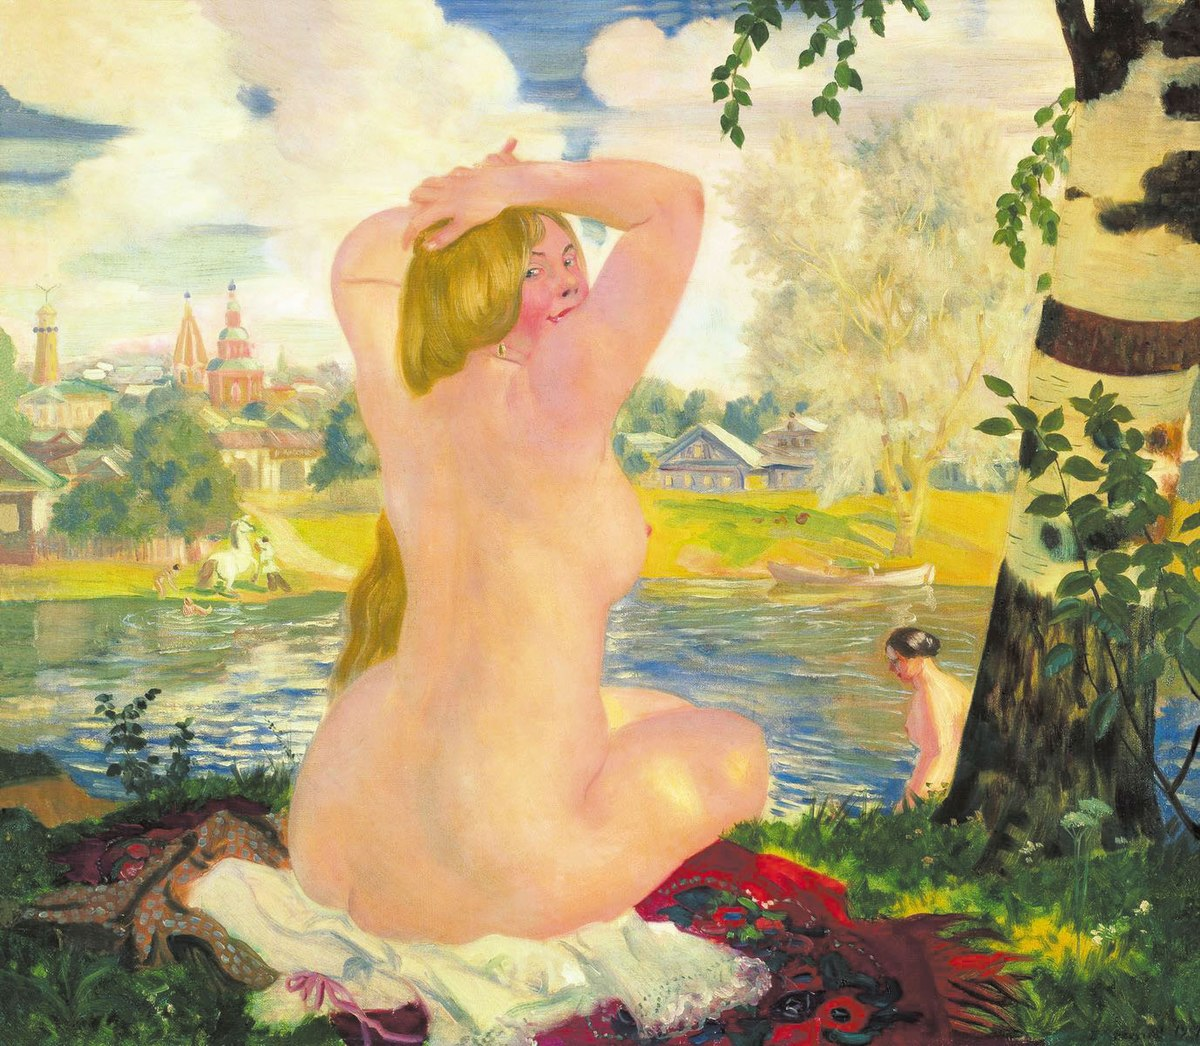 http://upload.wikimedia.org/wikipedia/commons/thumb/5/5e/Bathing._Kustodiev.jpg/1200px-Bathing._Kustodiev.jpg